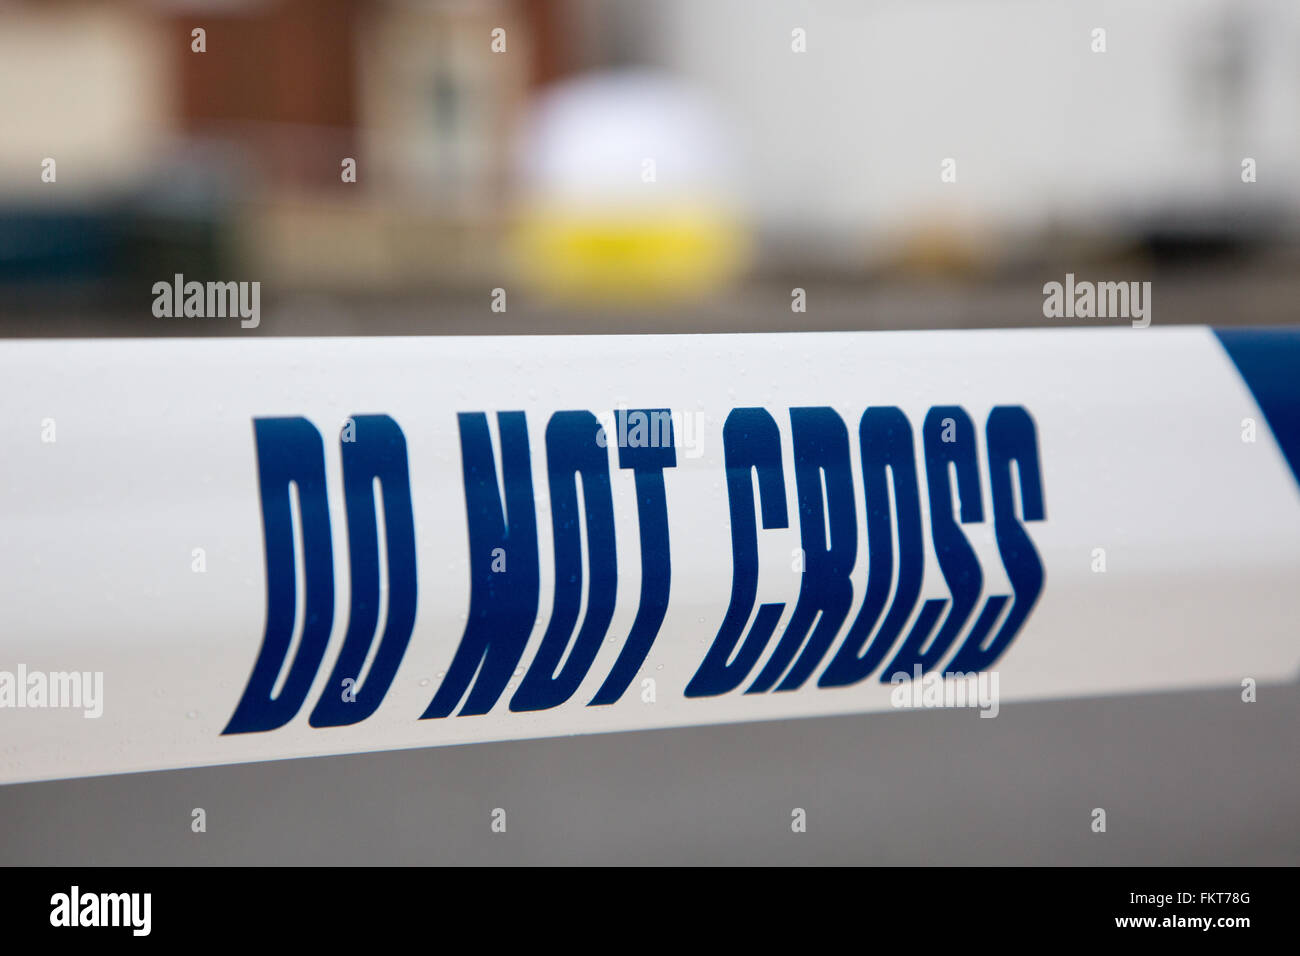 Police line surrounding an investigation into a crime - Stock Image